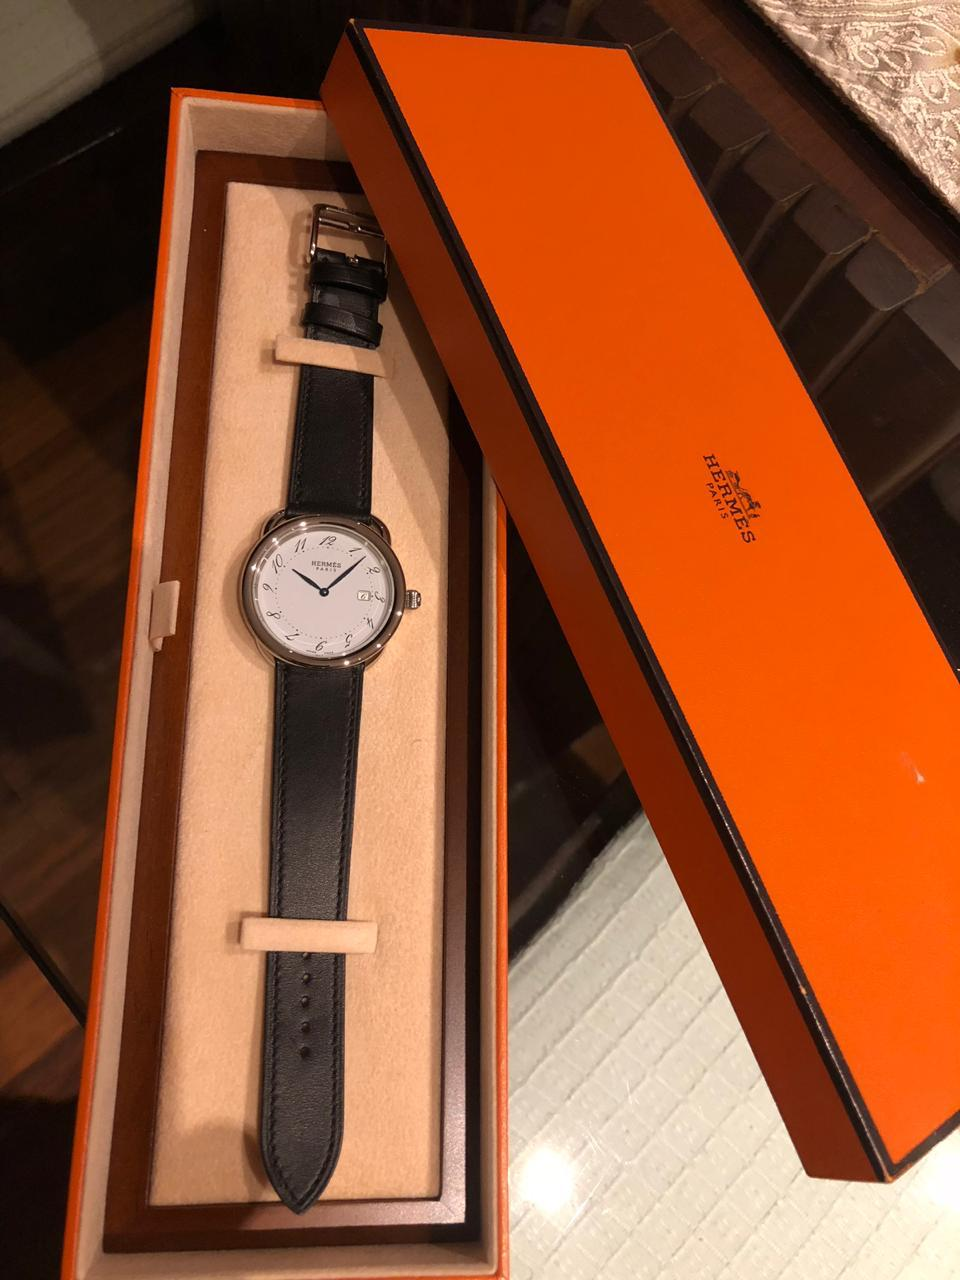 Hermes Men's Watch.jpg